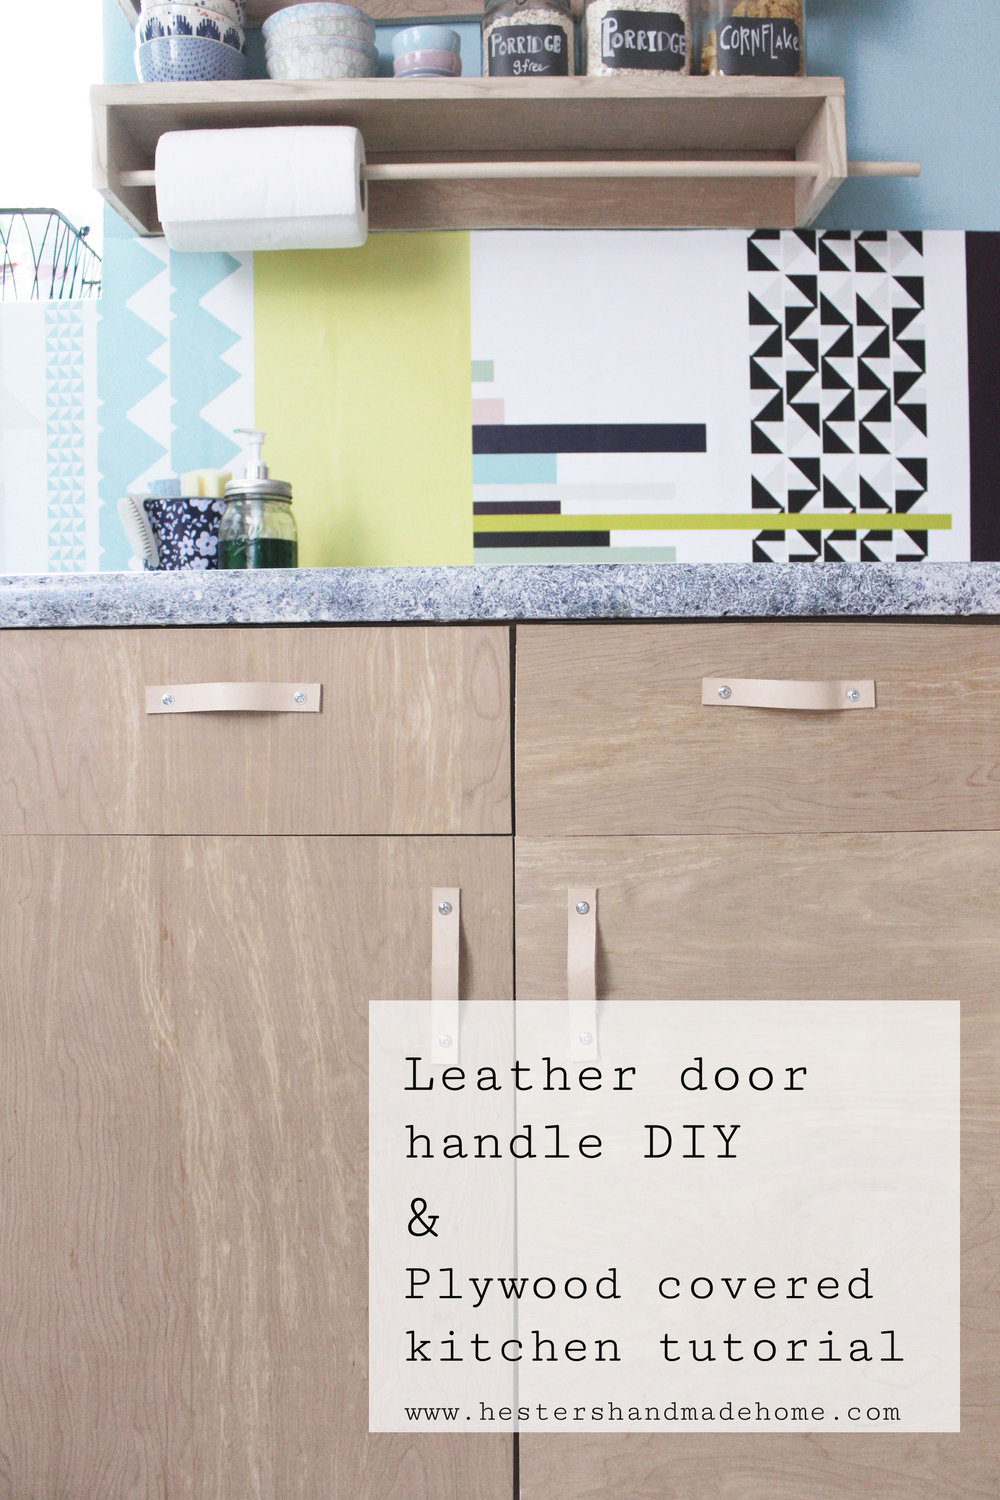 Plywood kicthen hack and handmade leather door handles, tutorials by hester's handmade Home